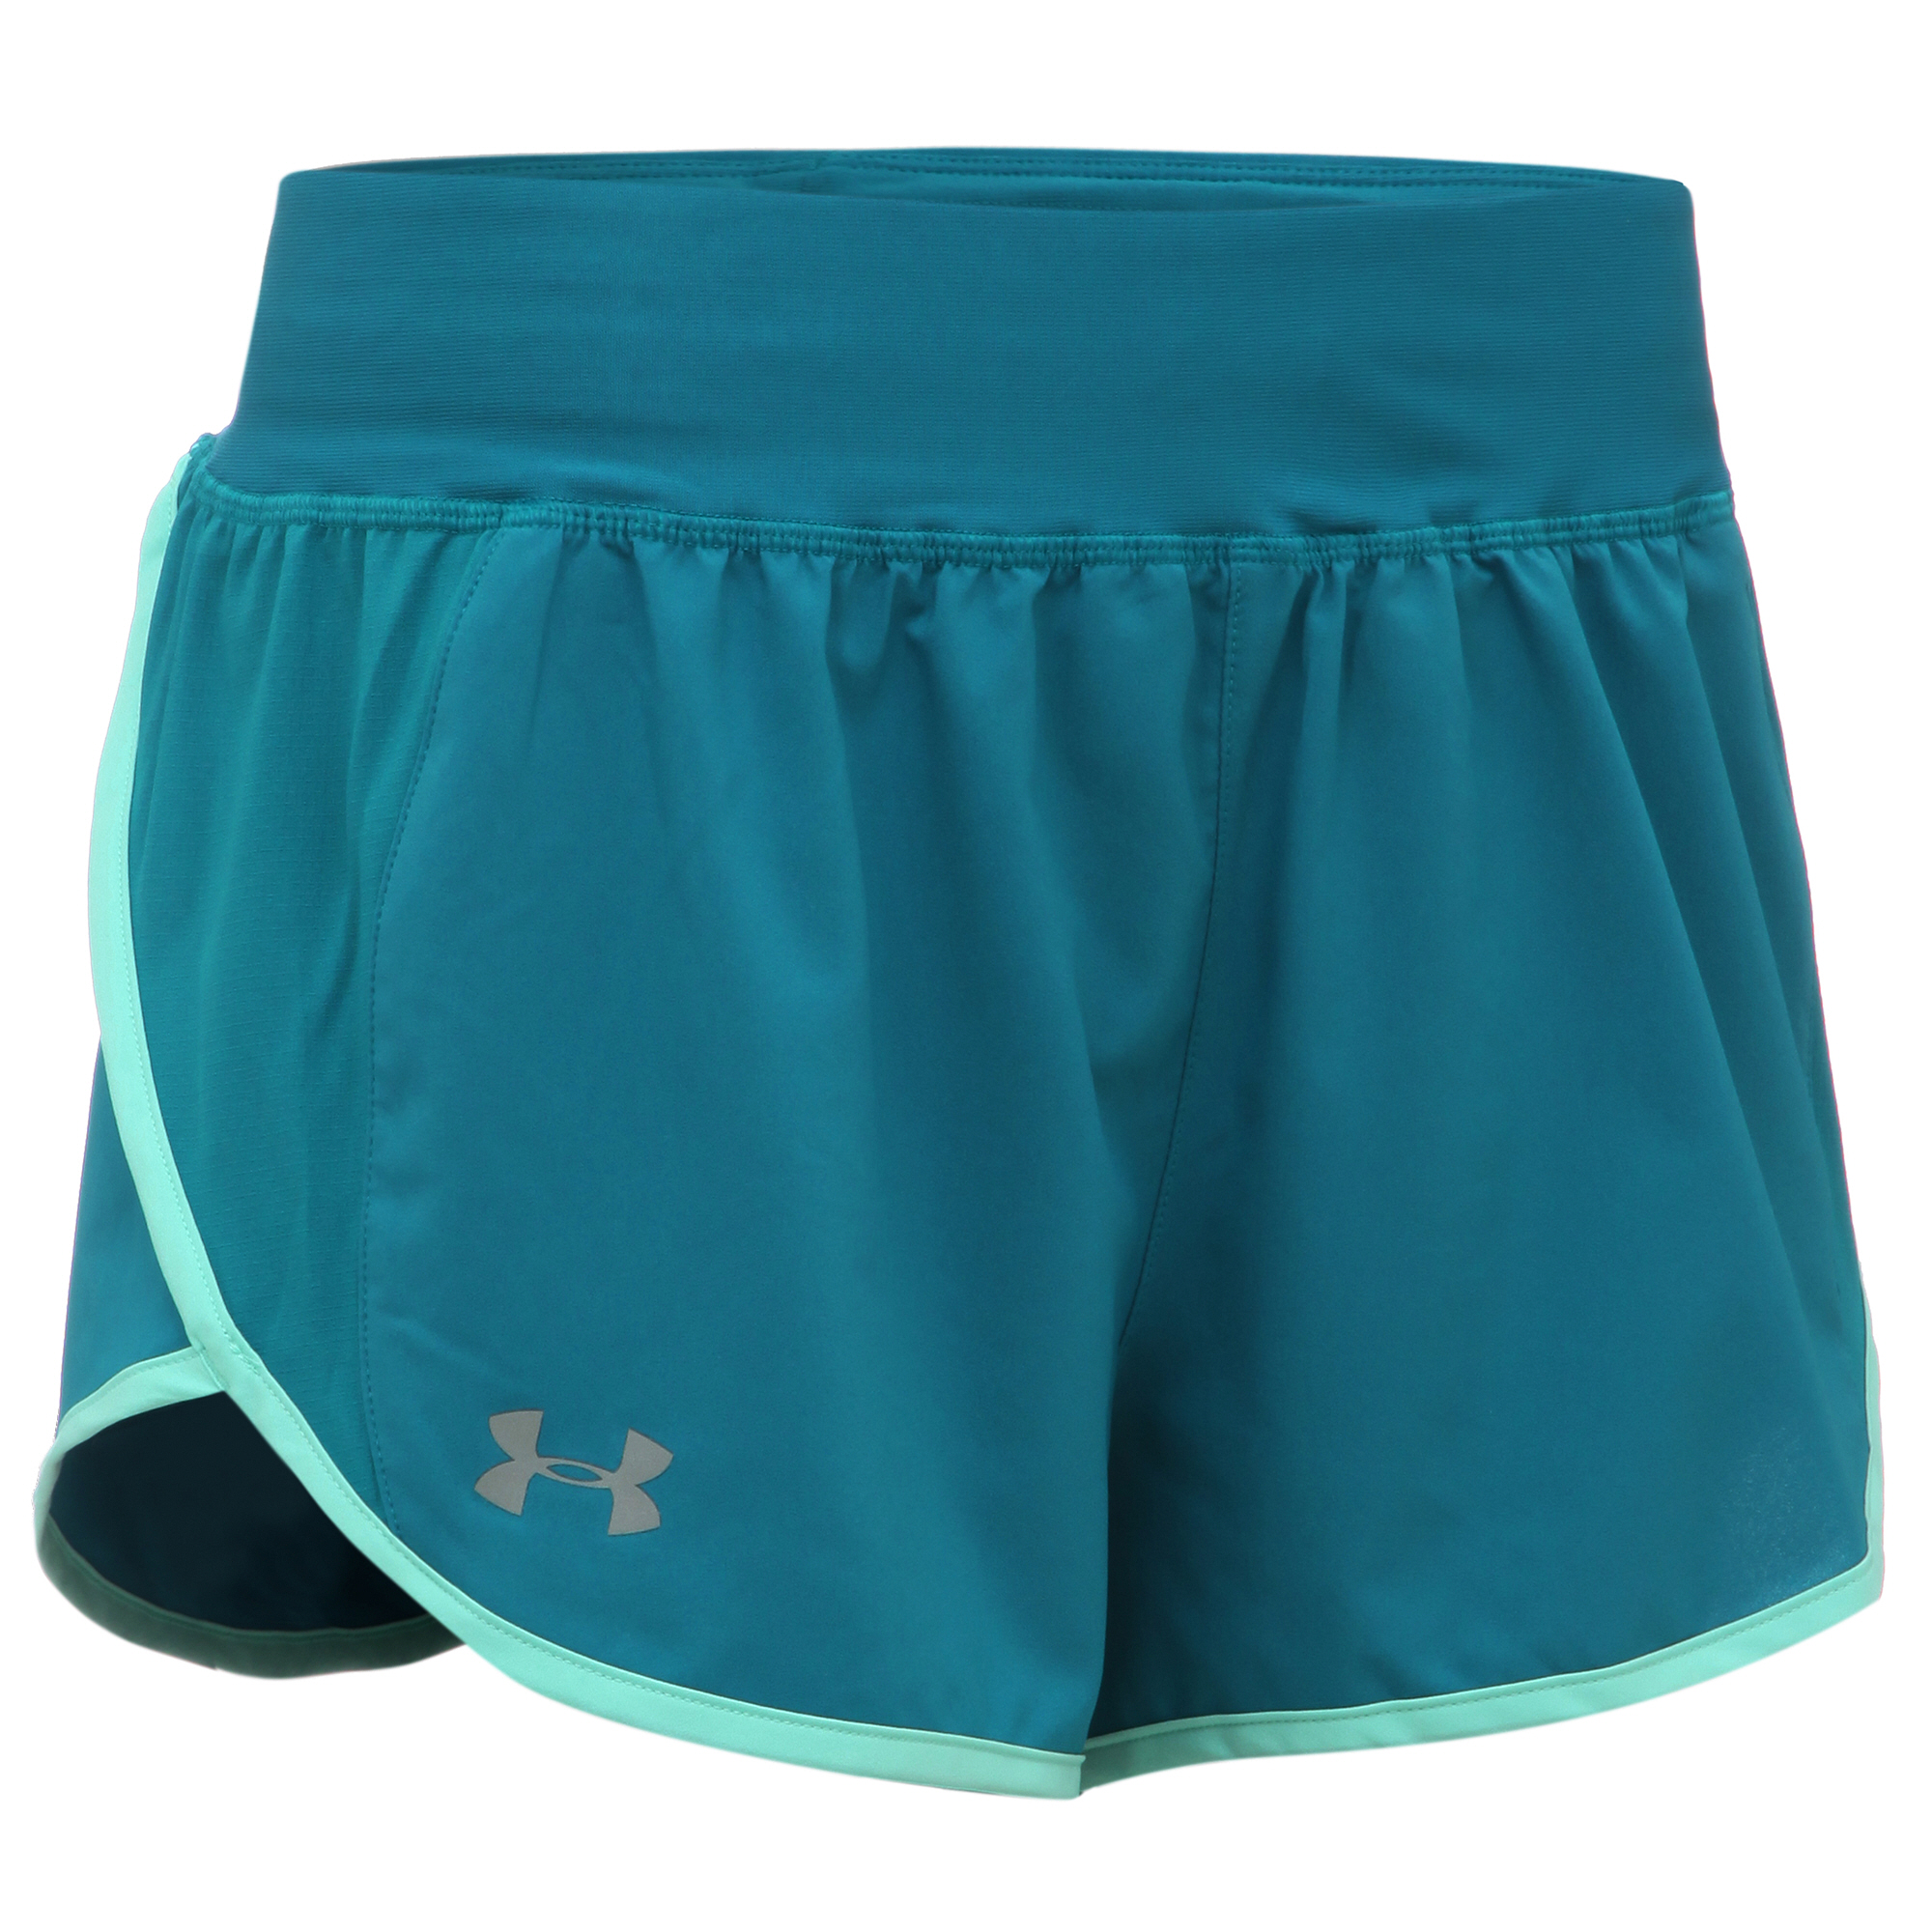 0b4f87f70ce7a Under-Armour-Women-s-Launch-2-in-1-Short-Running-Shorts-Bayou-Blue-AW17-1299983-953XS.jpg